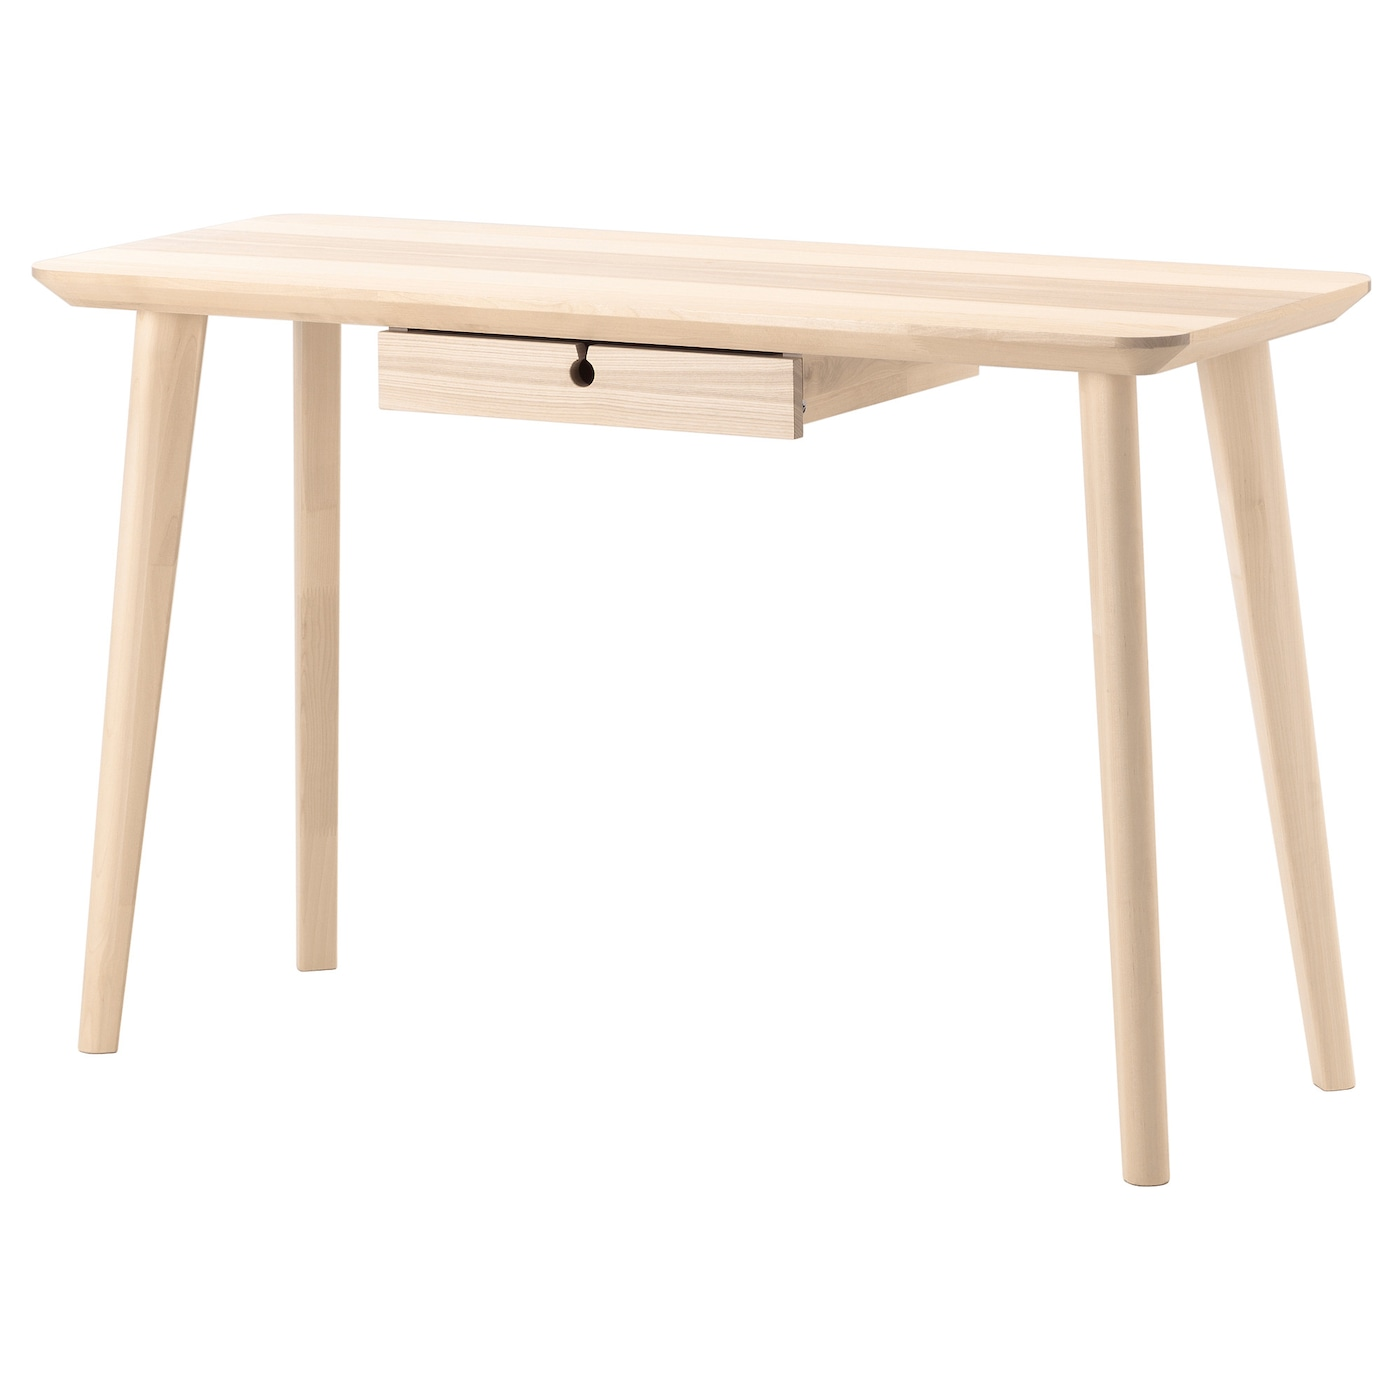 IKEA LISABO desk Each table has its own unique character due to the distinctive grain pattern.